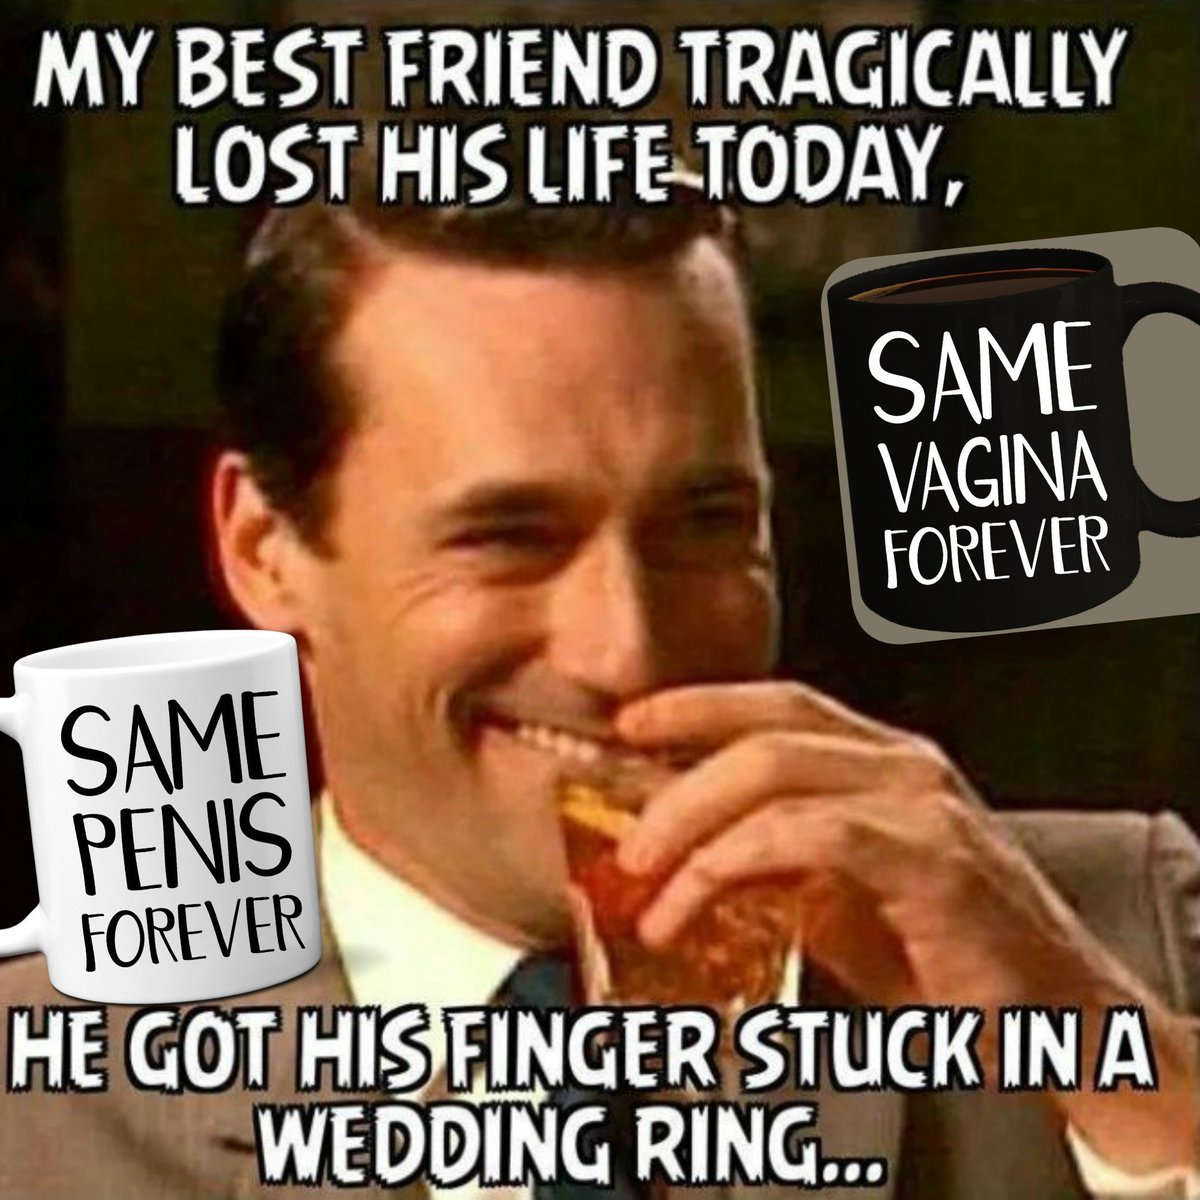 All About Family On Twitter Relationship Meme Theme Yay Same Penis Forever You Like The Ring Of That Follow Us Themuglifecompany For Laughs All Week Https T Co 4vkhmcveec Meme generator, instant notifications, image/video download, achievements and many more! relationship meme theme yay